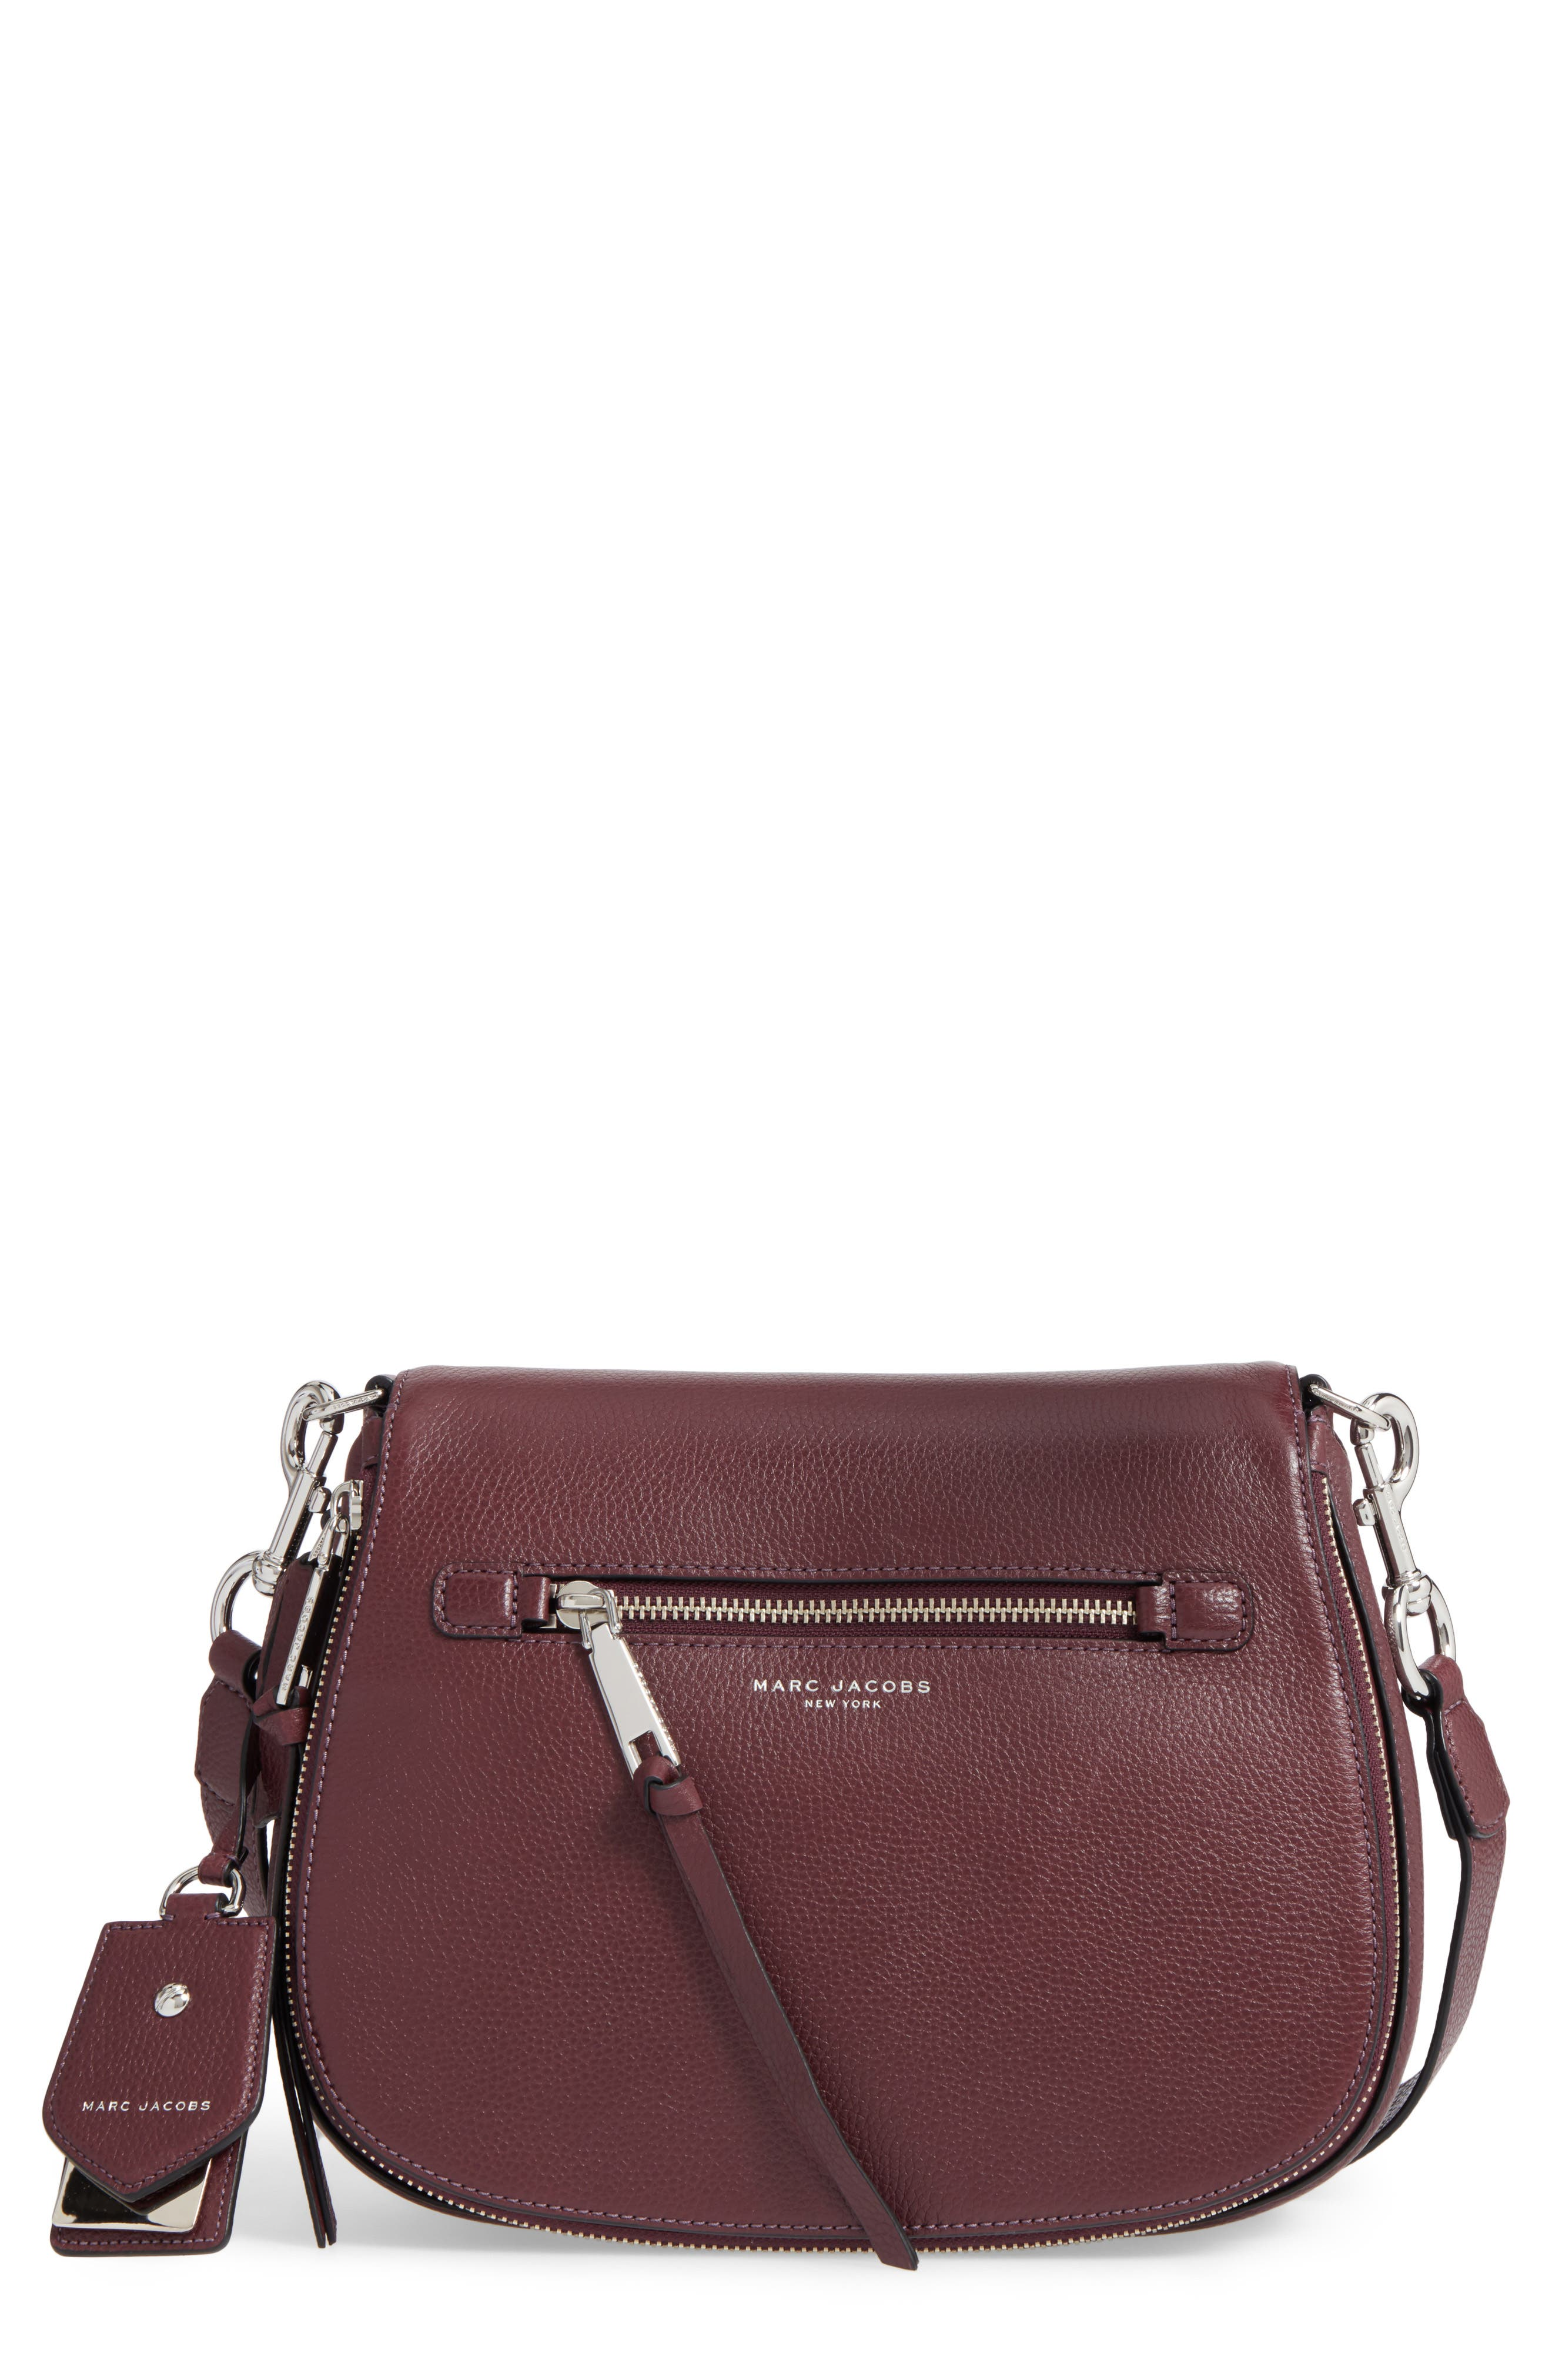 Recruit Nomad Pebbled Leather Crossbody Bag,                         Main,                         color, 538